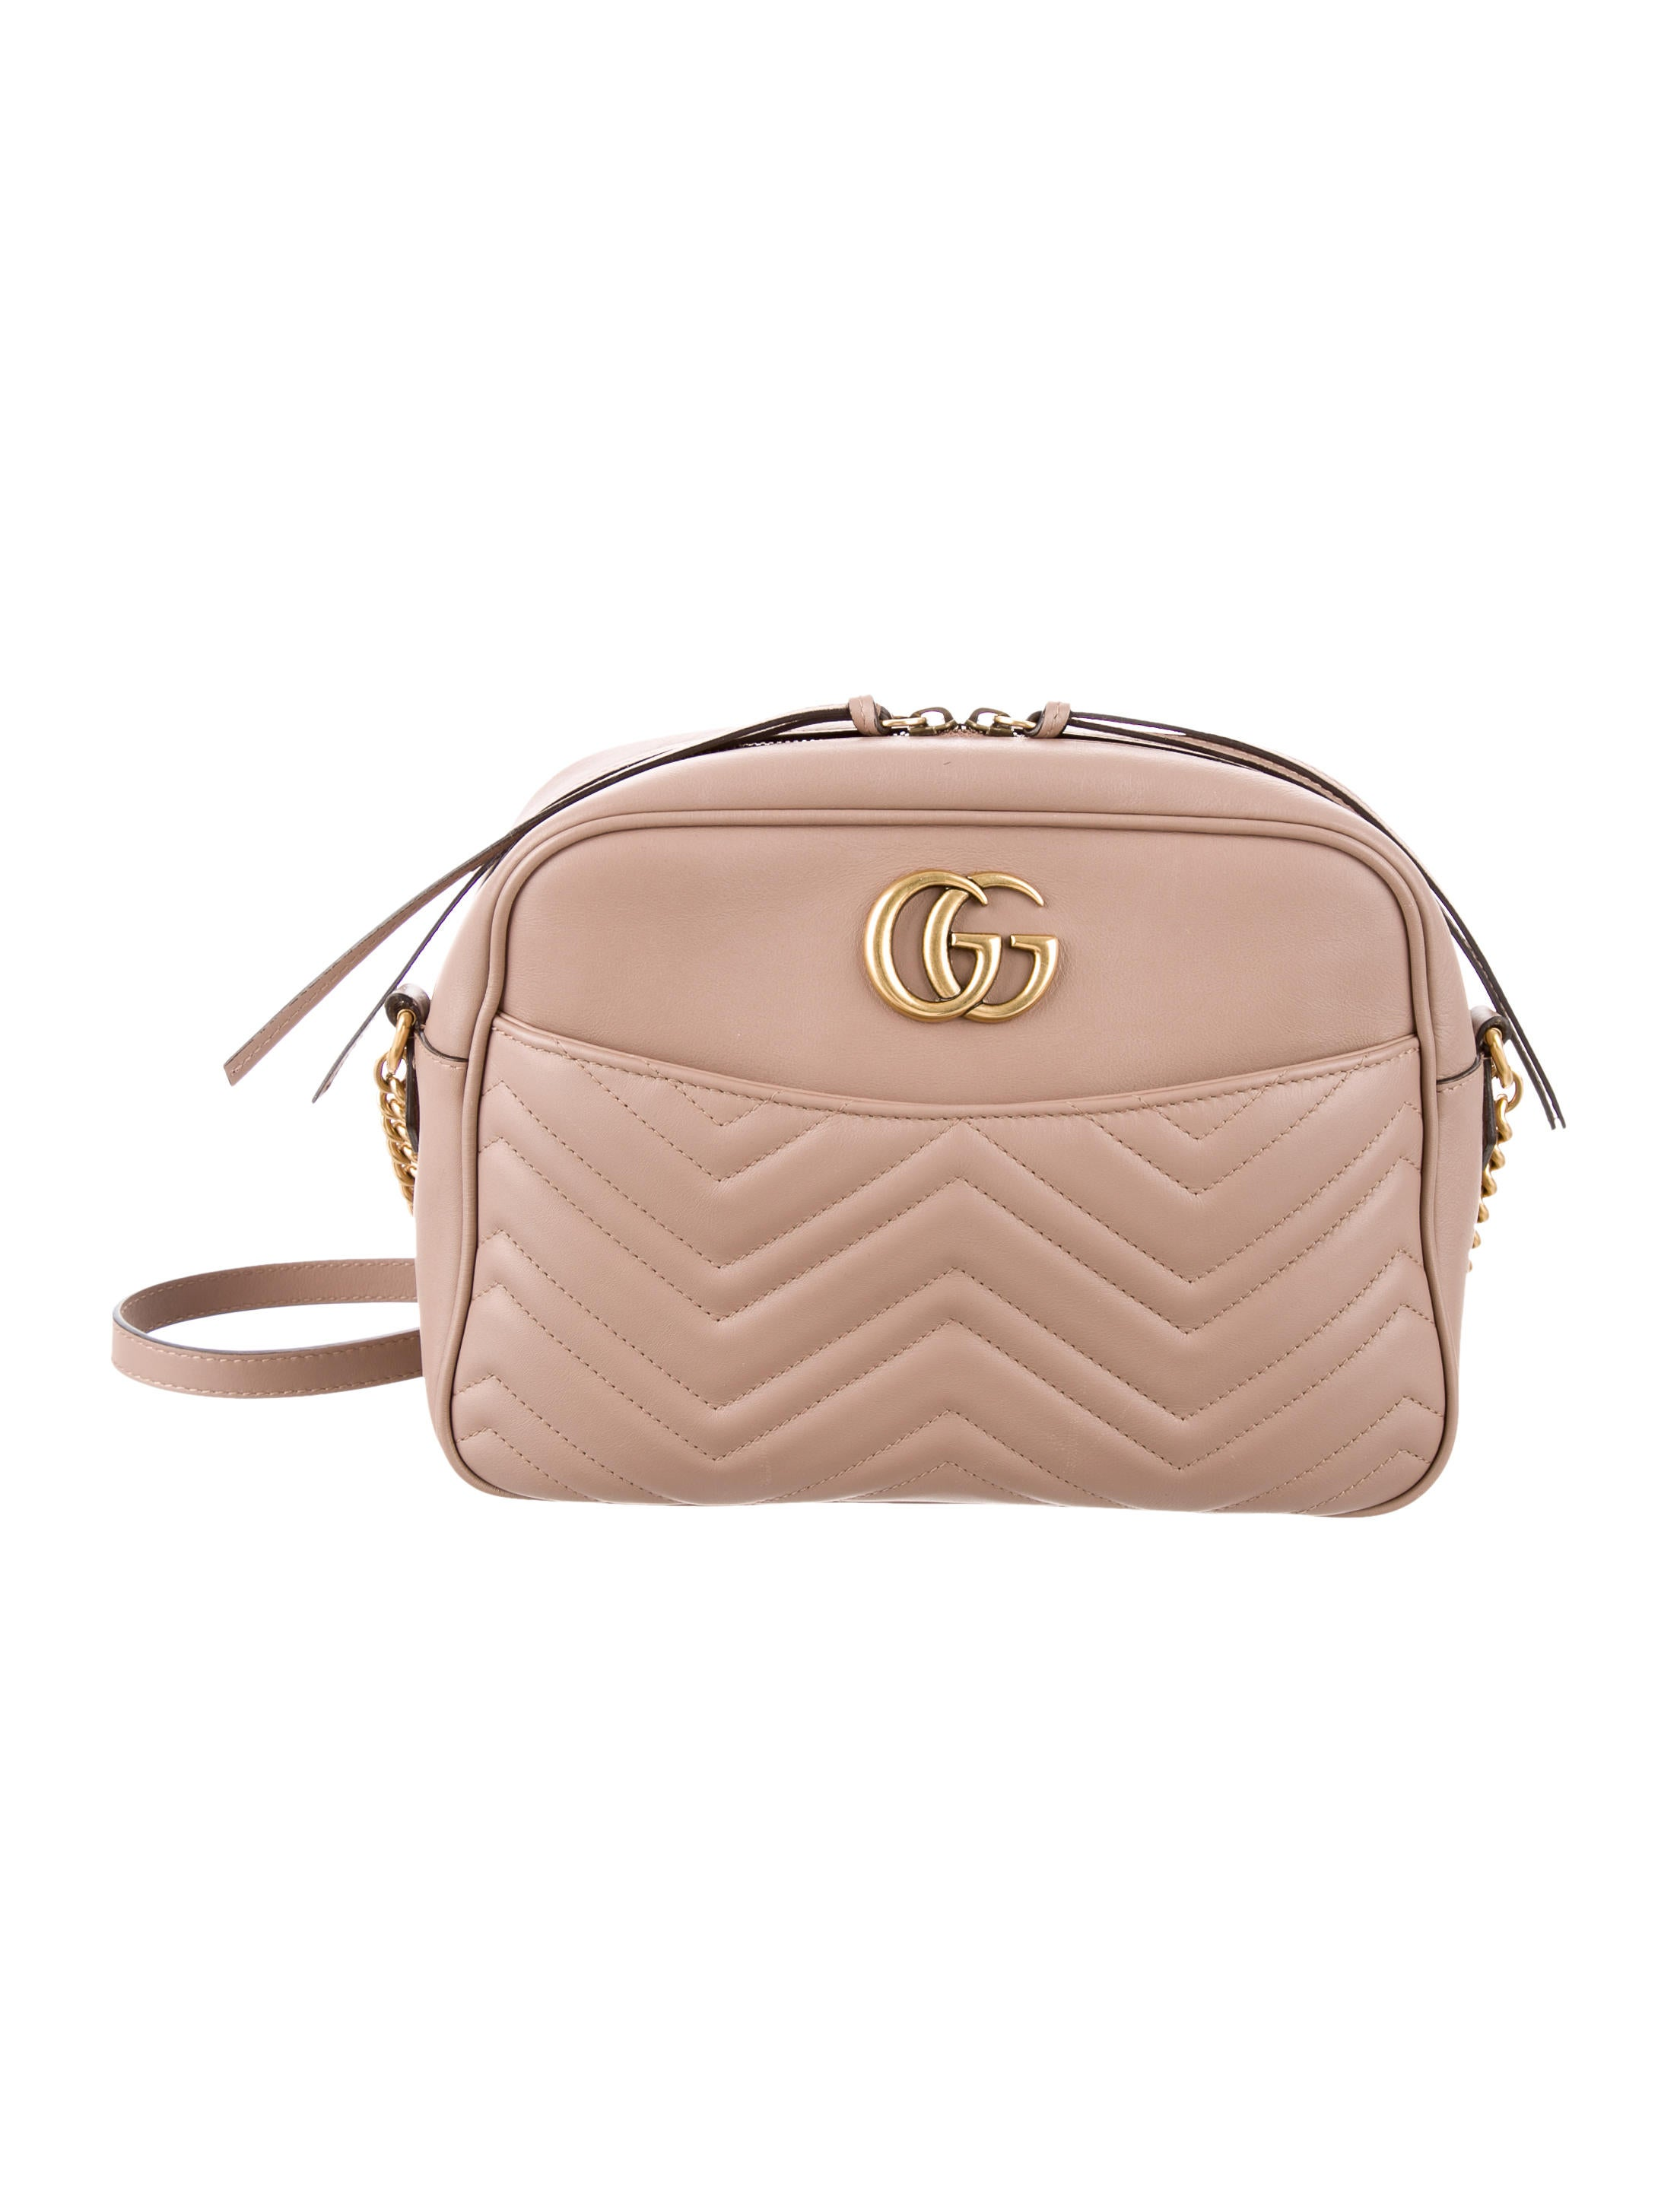 bea876611ff6 Gucci GG Marmont Medium Matelassé Shoulder Bag - Handbags ...